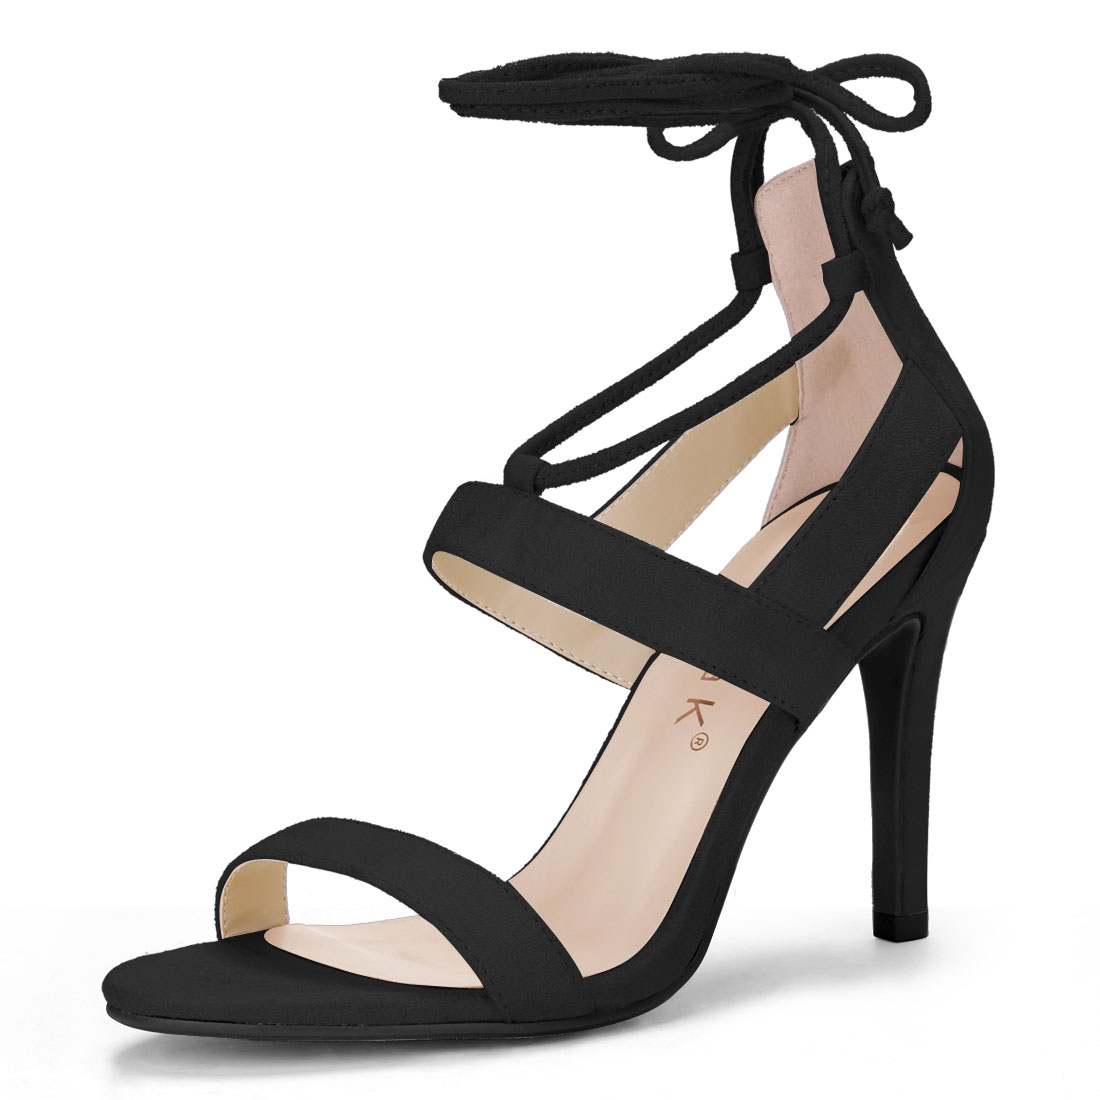 Women Open Toe Cutout Stiletto Heel Lace Up Sandals Black US 6